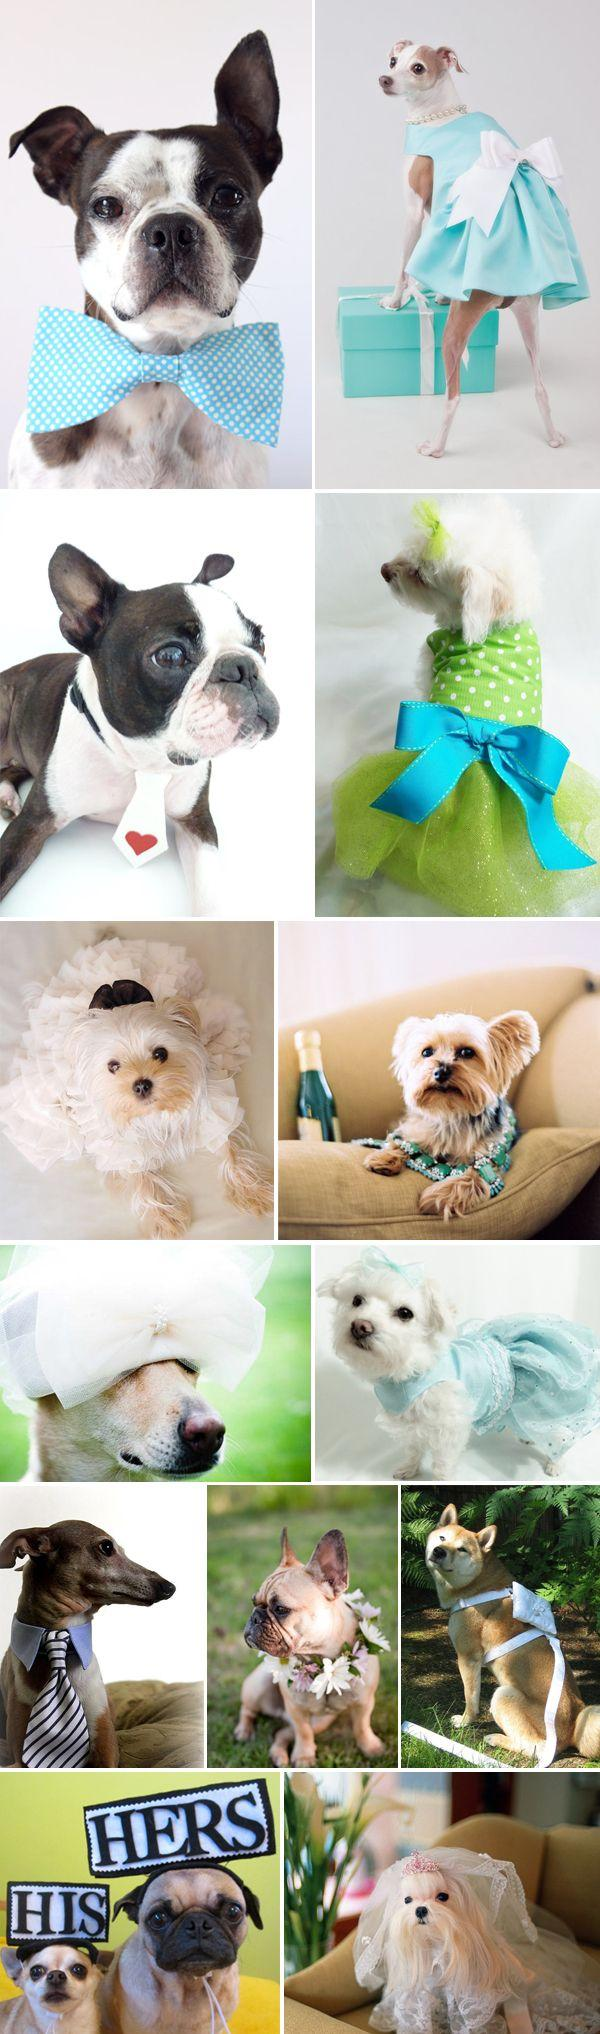 Boda - Super Cute! Wedding Dogs